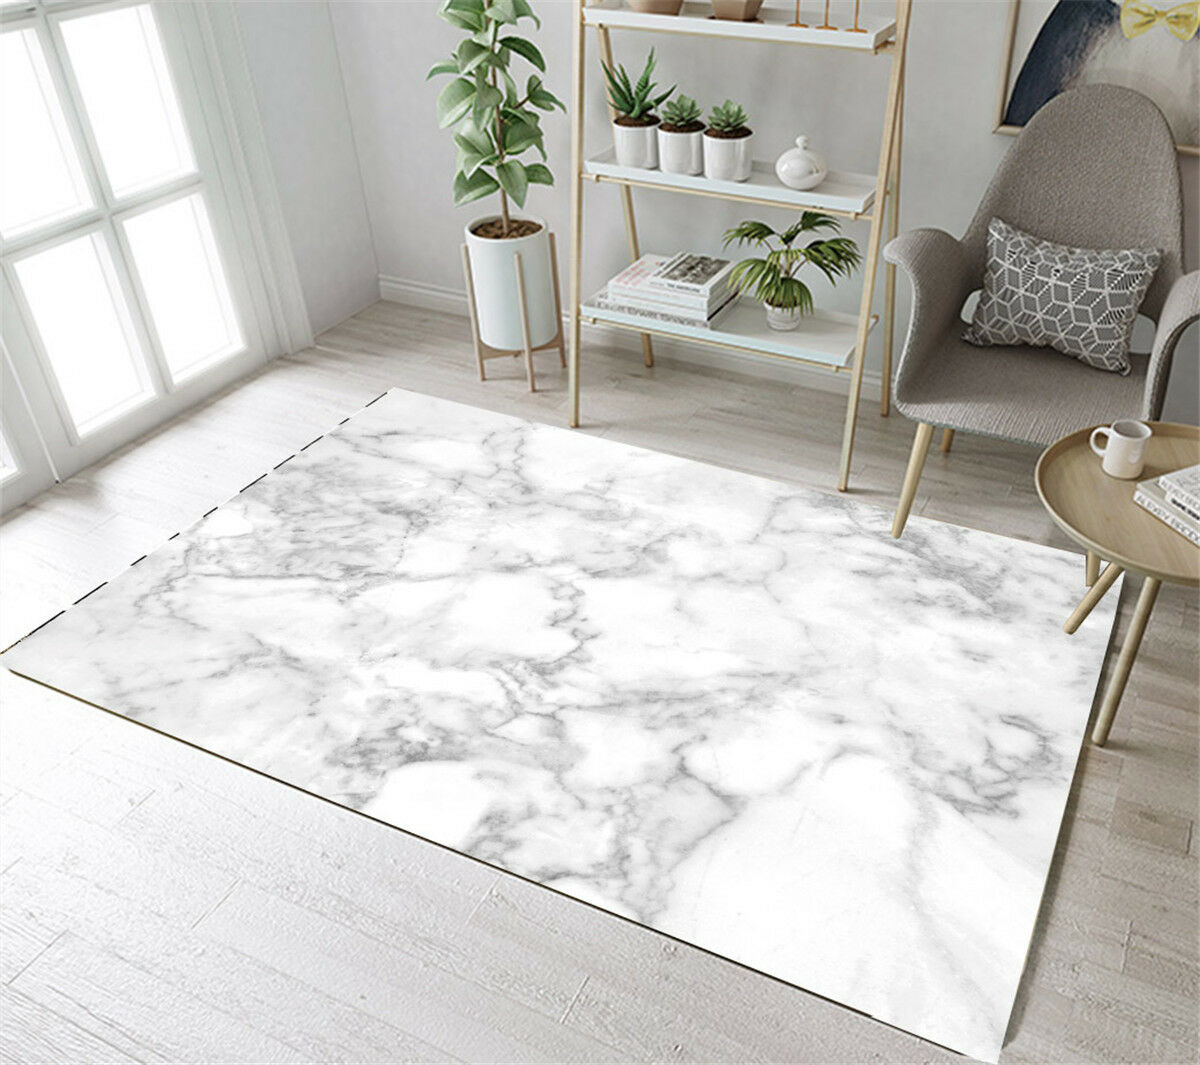 Floor Rug Mat White Gray Marble Style Bedroom Carpet Living Room Area Rugs New 1 Of 10